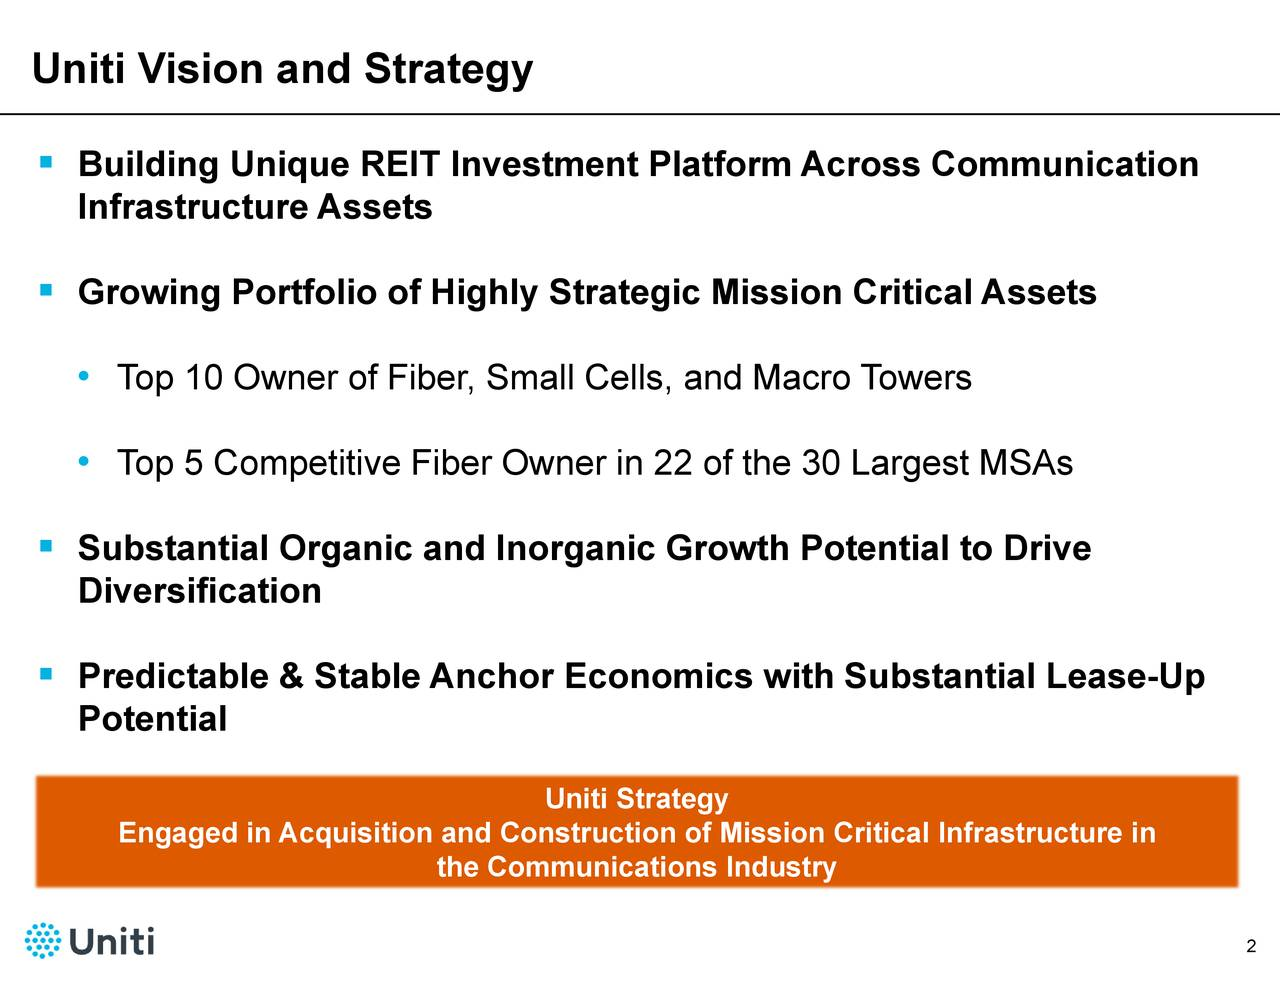 Uniti Strategy the Communications Industry Top 10opw5CerofeiiireFibelOewn,randM2oquisition and Construction of Mission Critical Infrastructure in BuIlfiaGtrni•ue A•sTfIlubitaethlolrabregAcntinliAo Uniti Vision and Strategy  